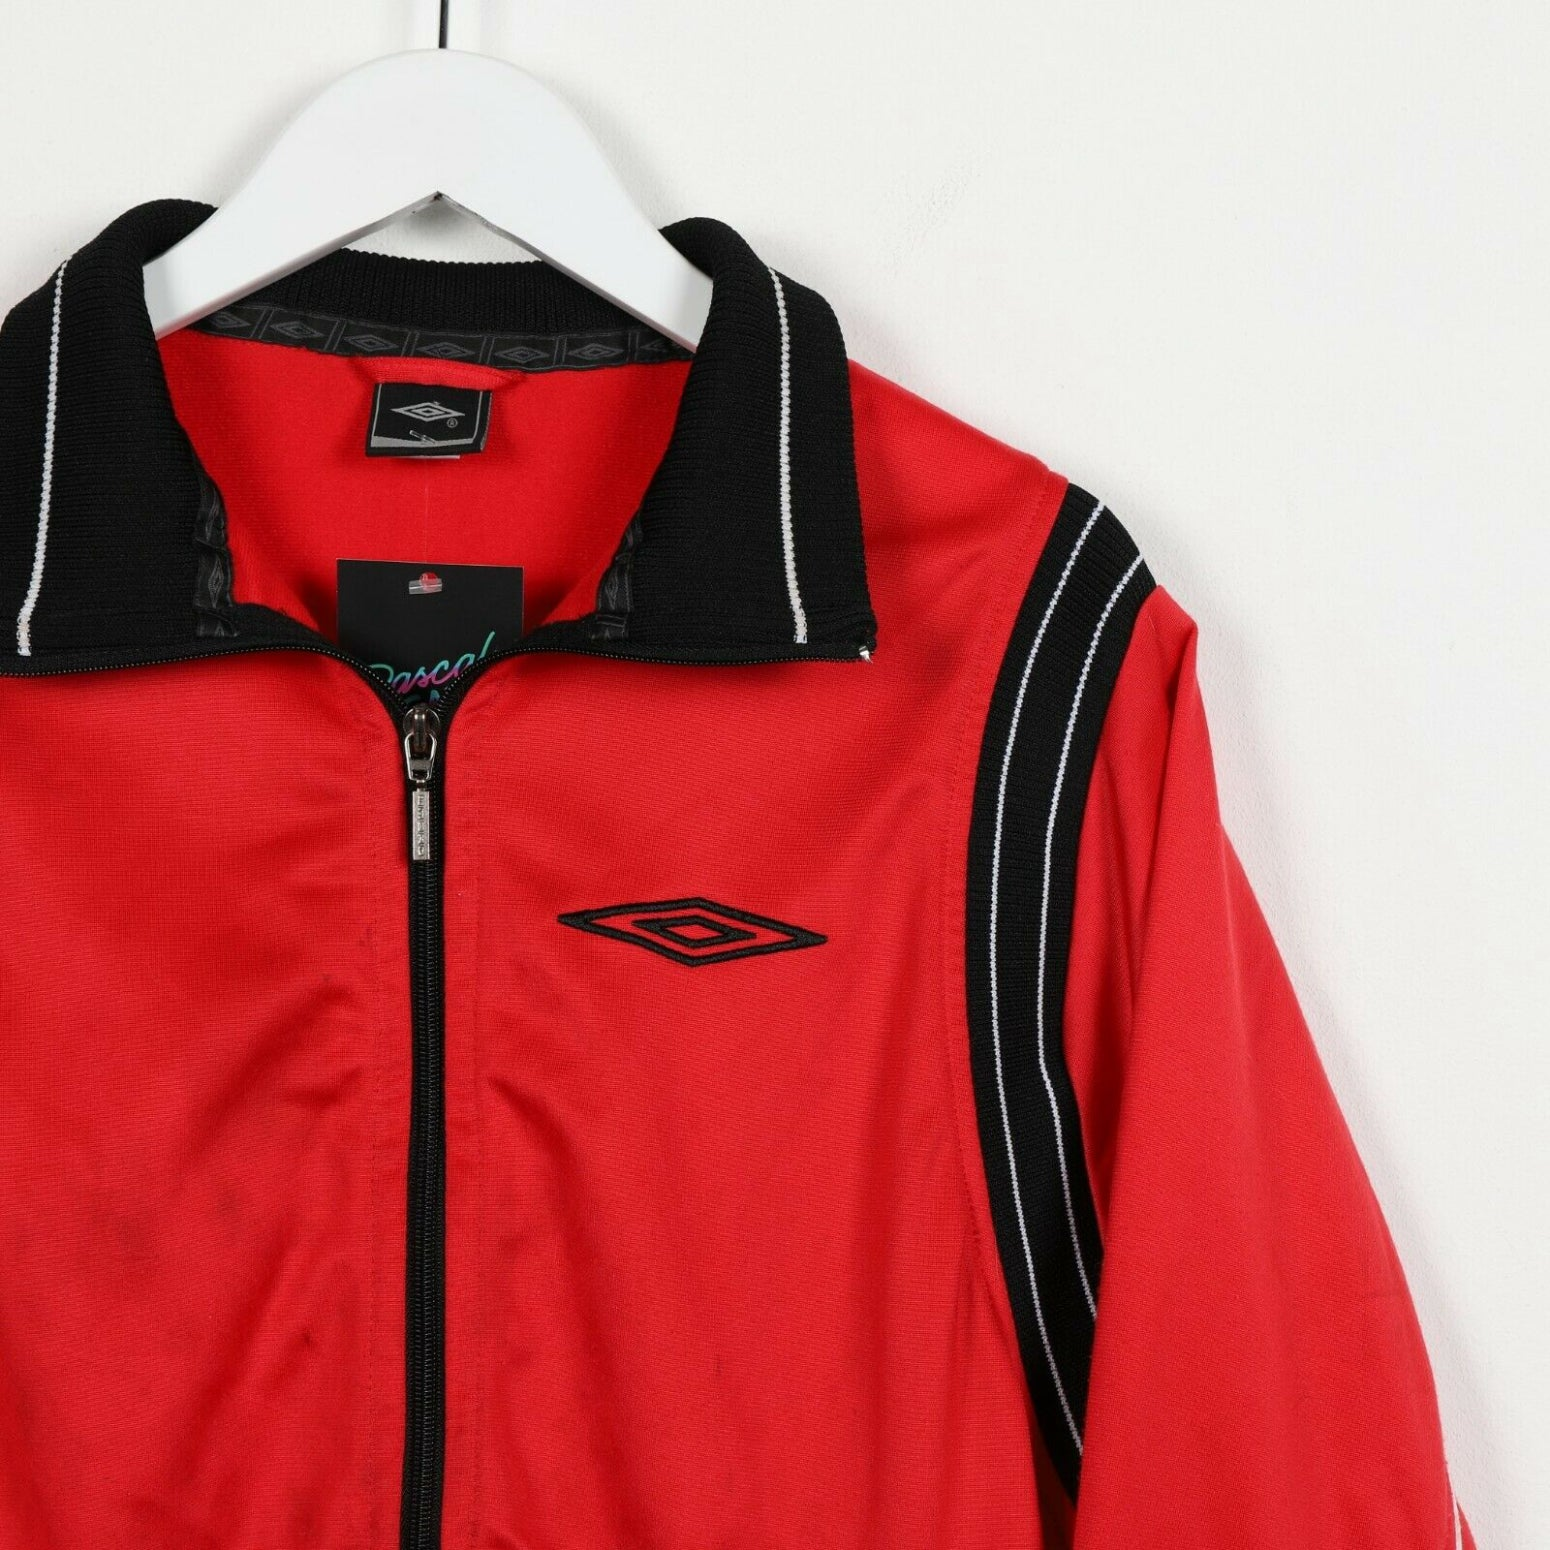 Vintage UMBRO Back Spell Out Zip Up Track Top Jacket Red | Small S